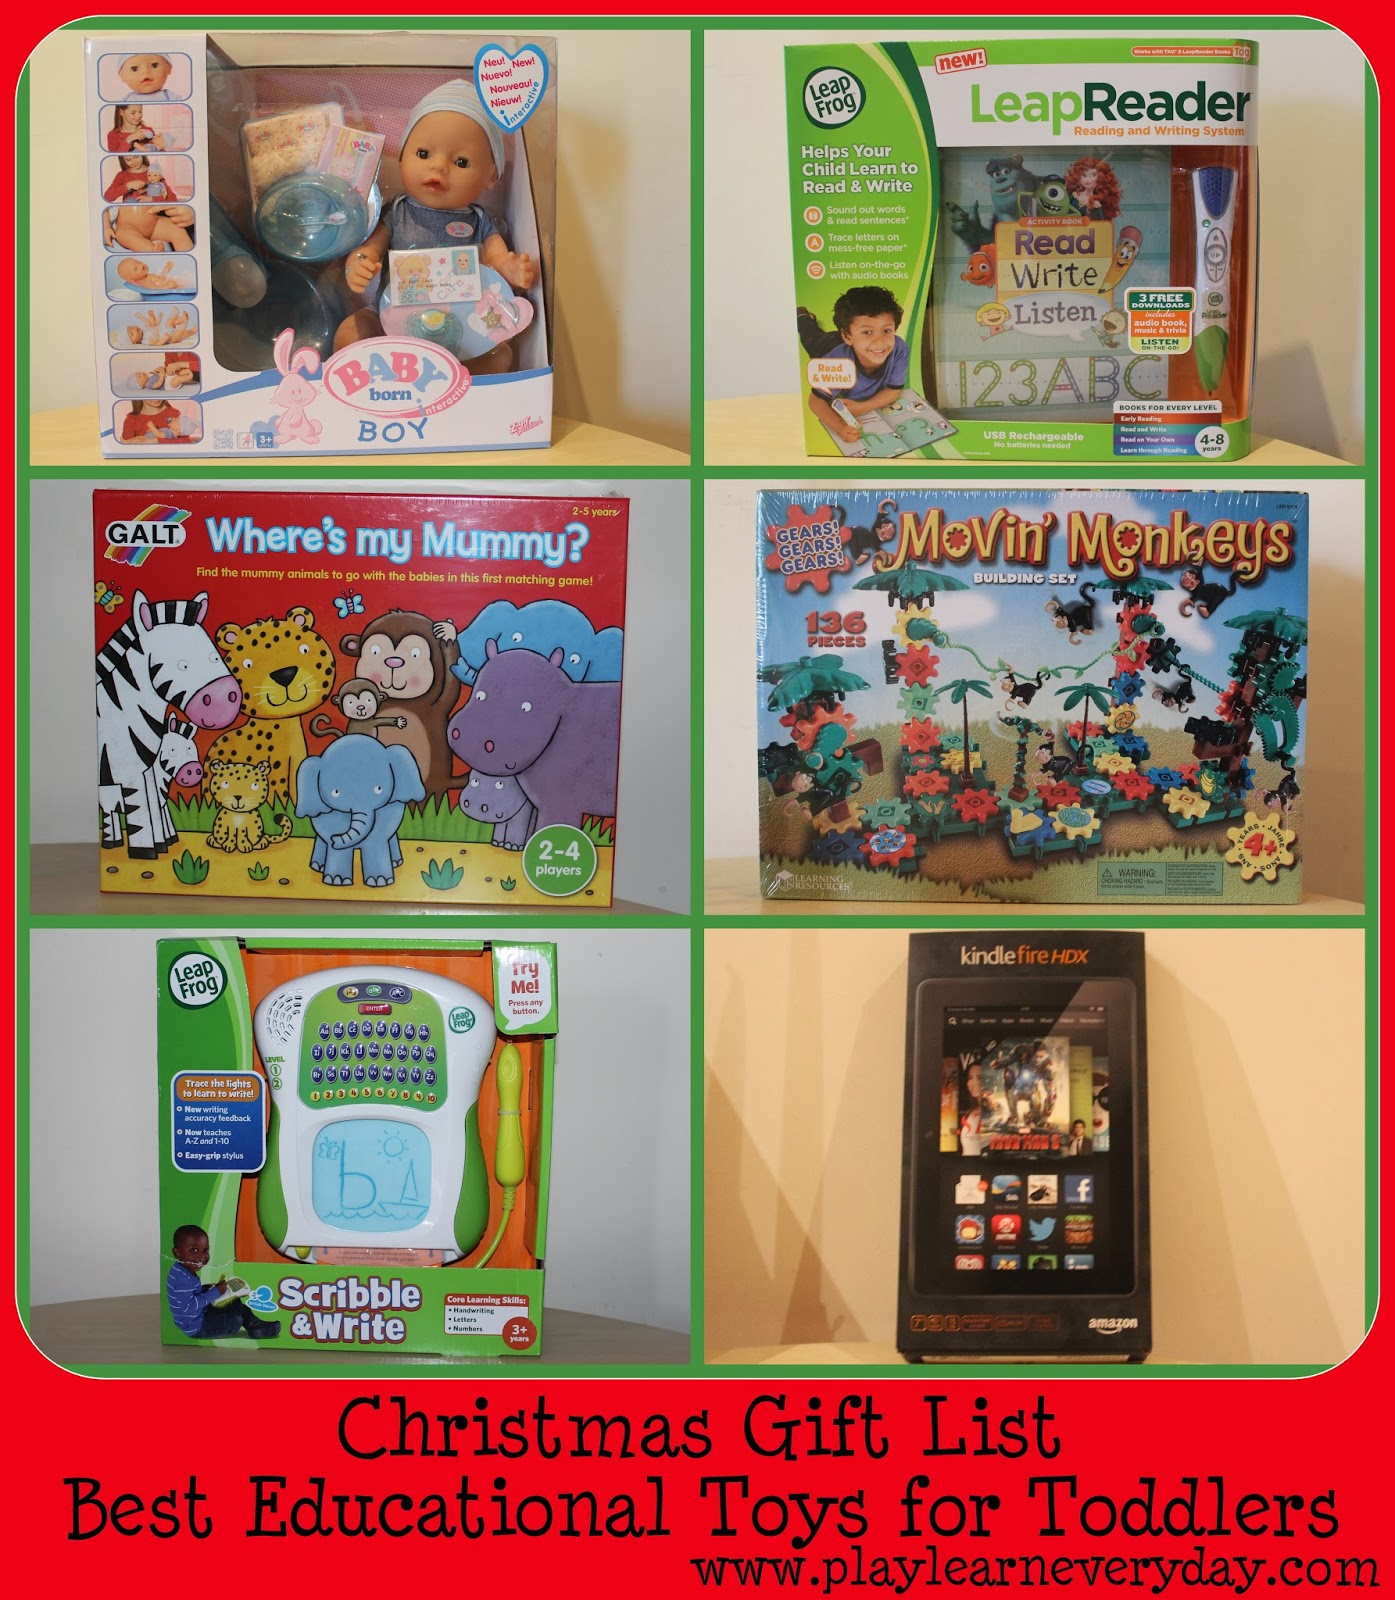 Christmas Gift List - Best Educational Toys for Toddlers ...